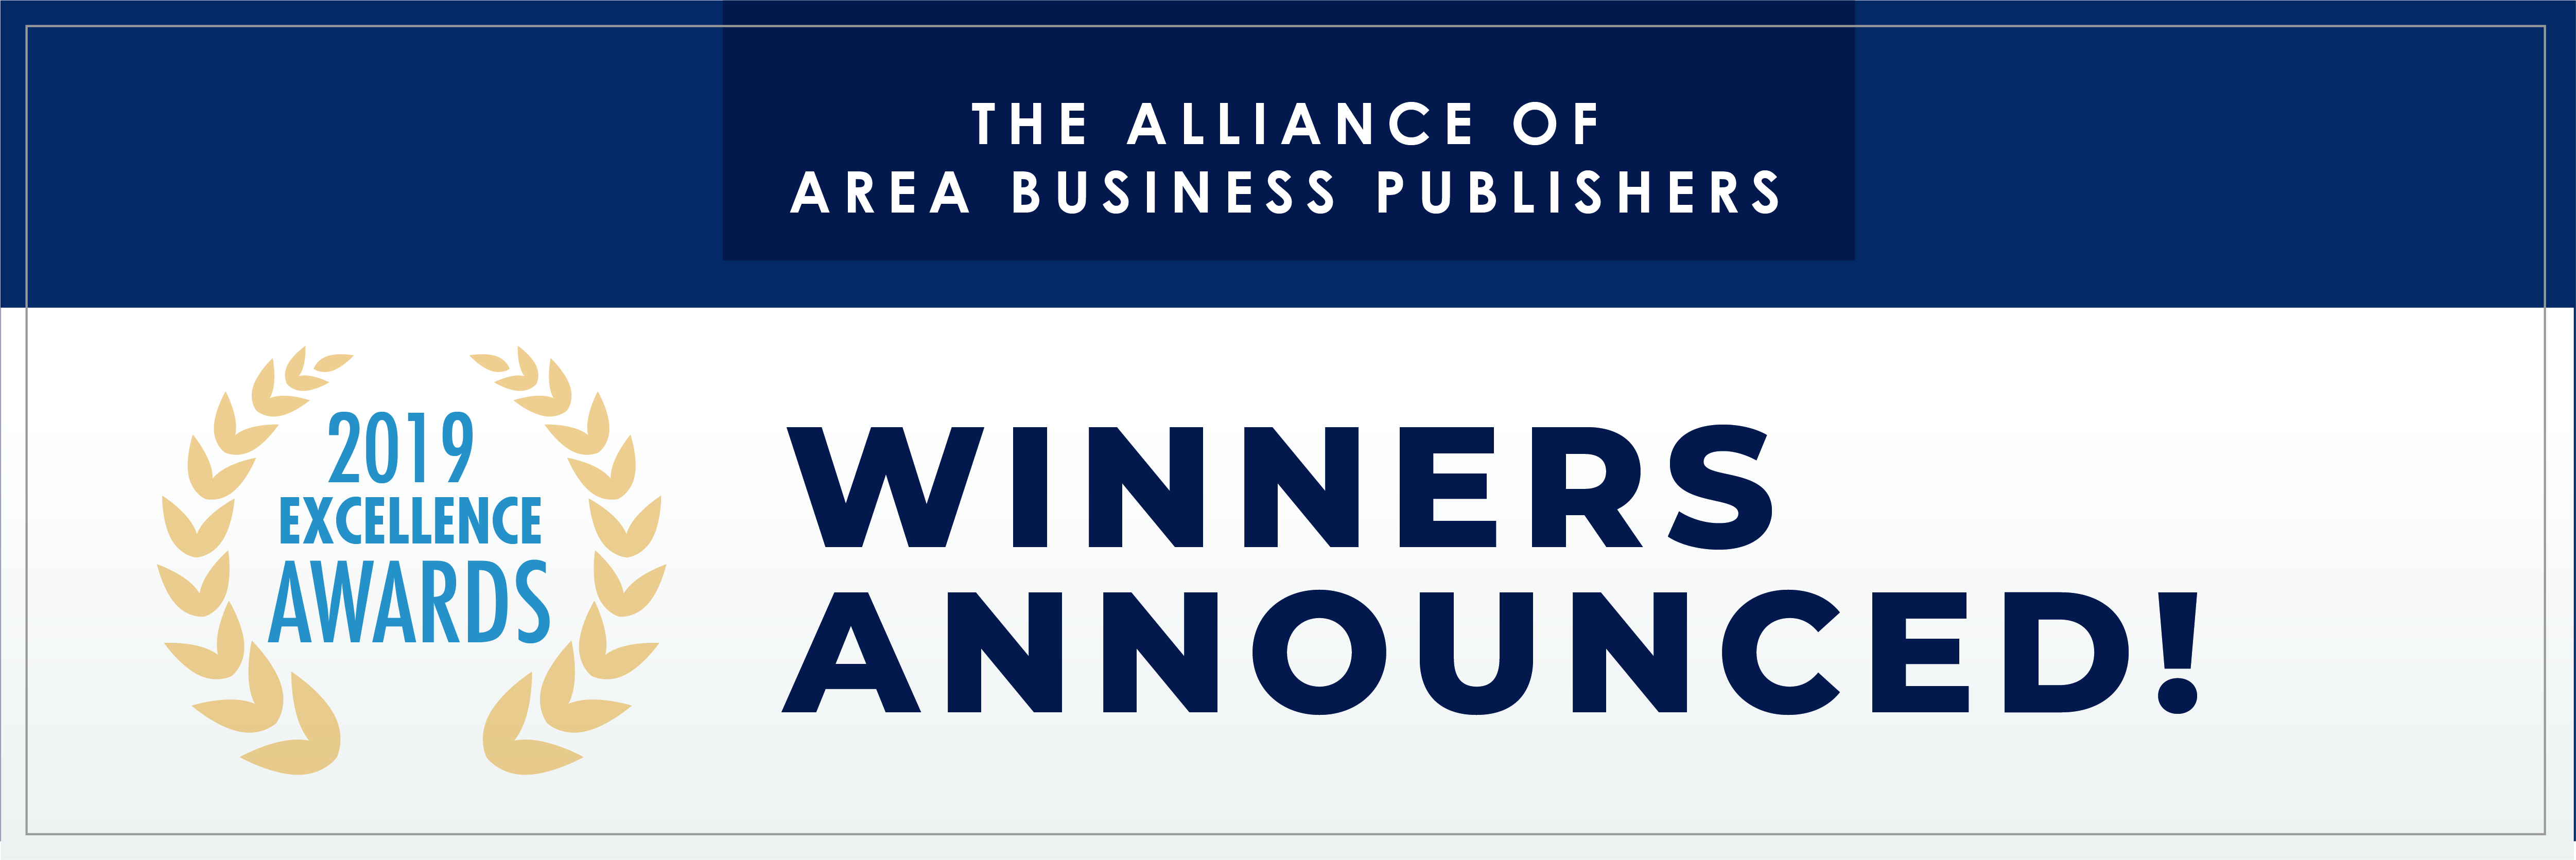 The Alliance of Area Business Publishers